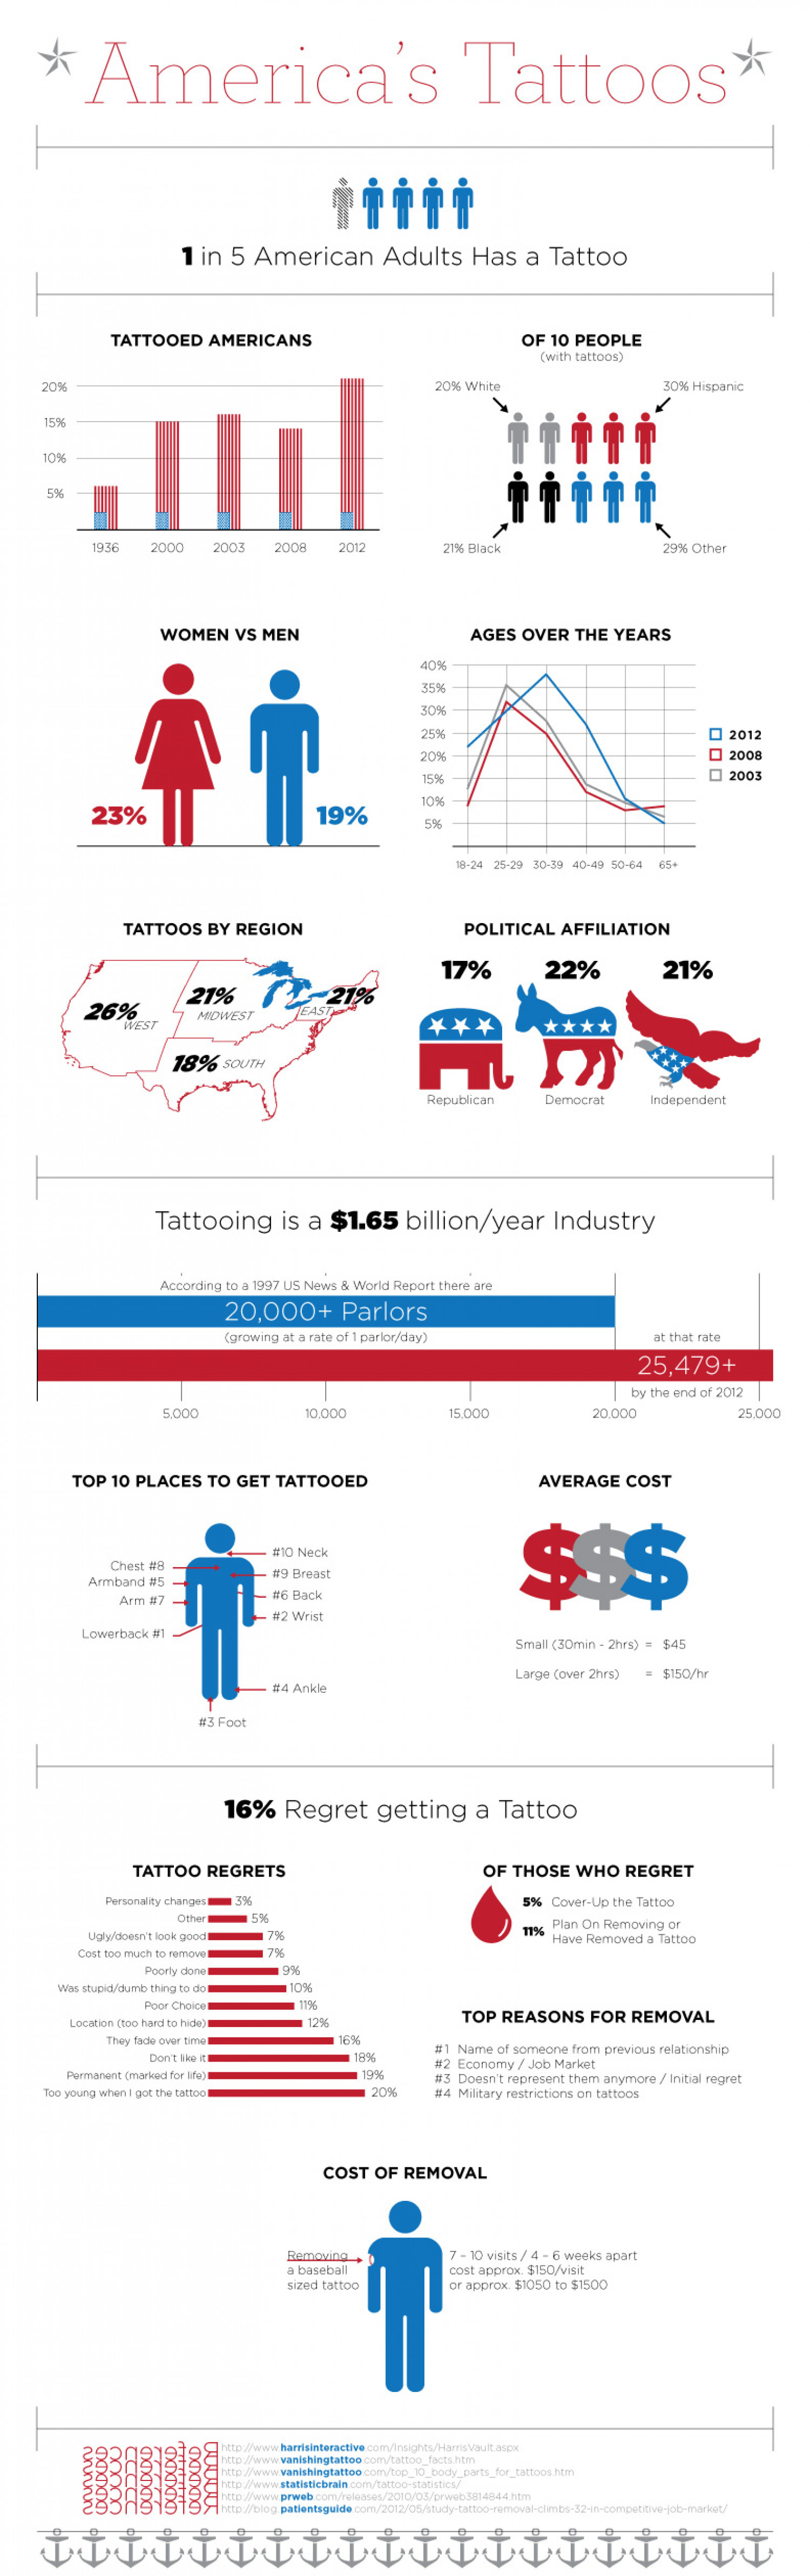 America's Tattoos Infographic